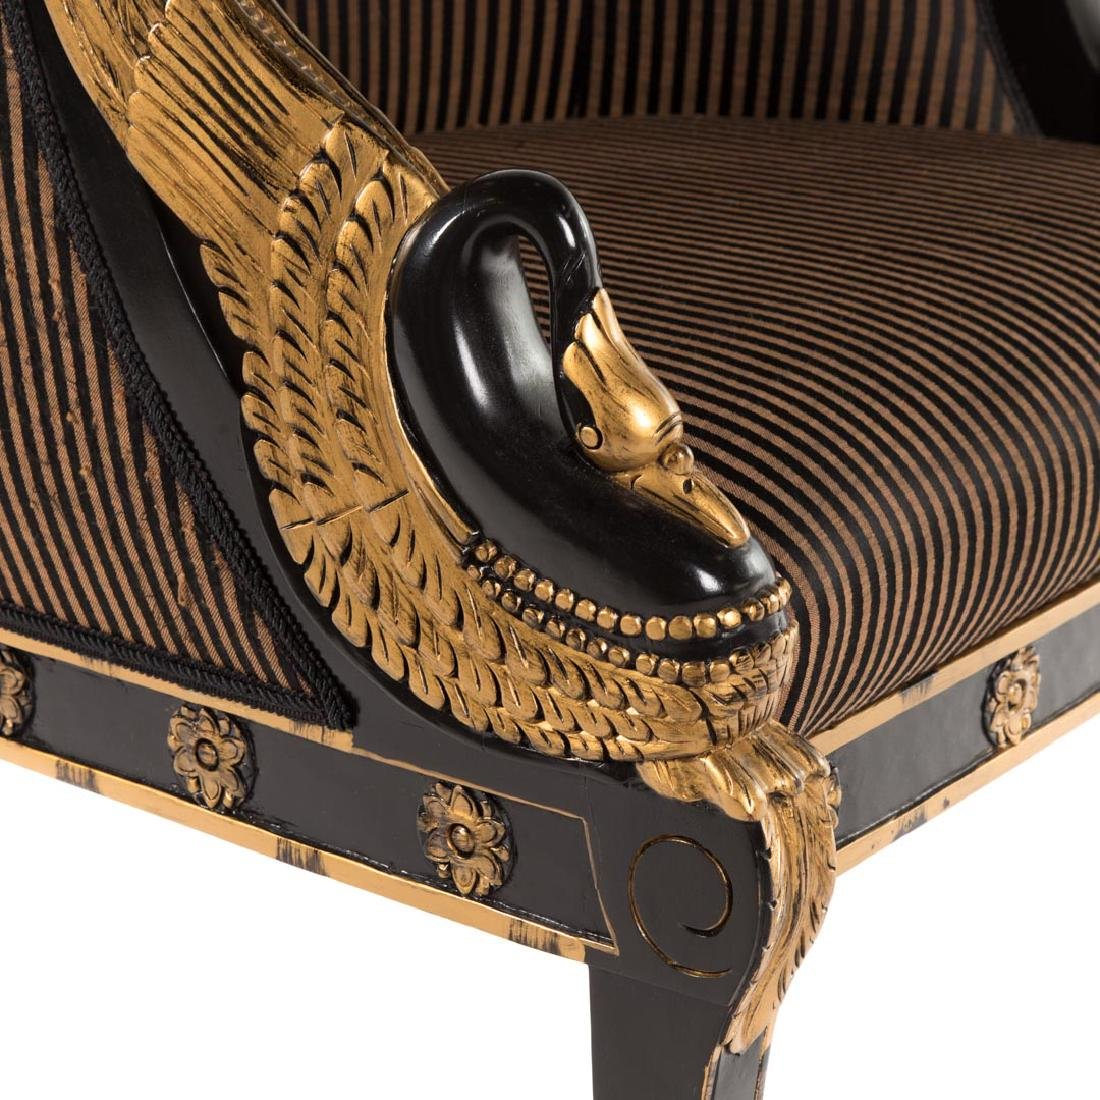 Empire style partial gilt upholstered bergere - 4